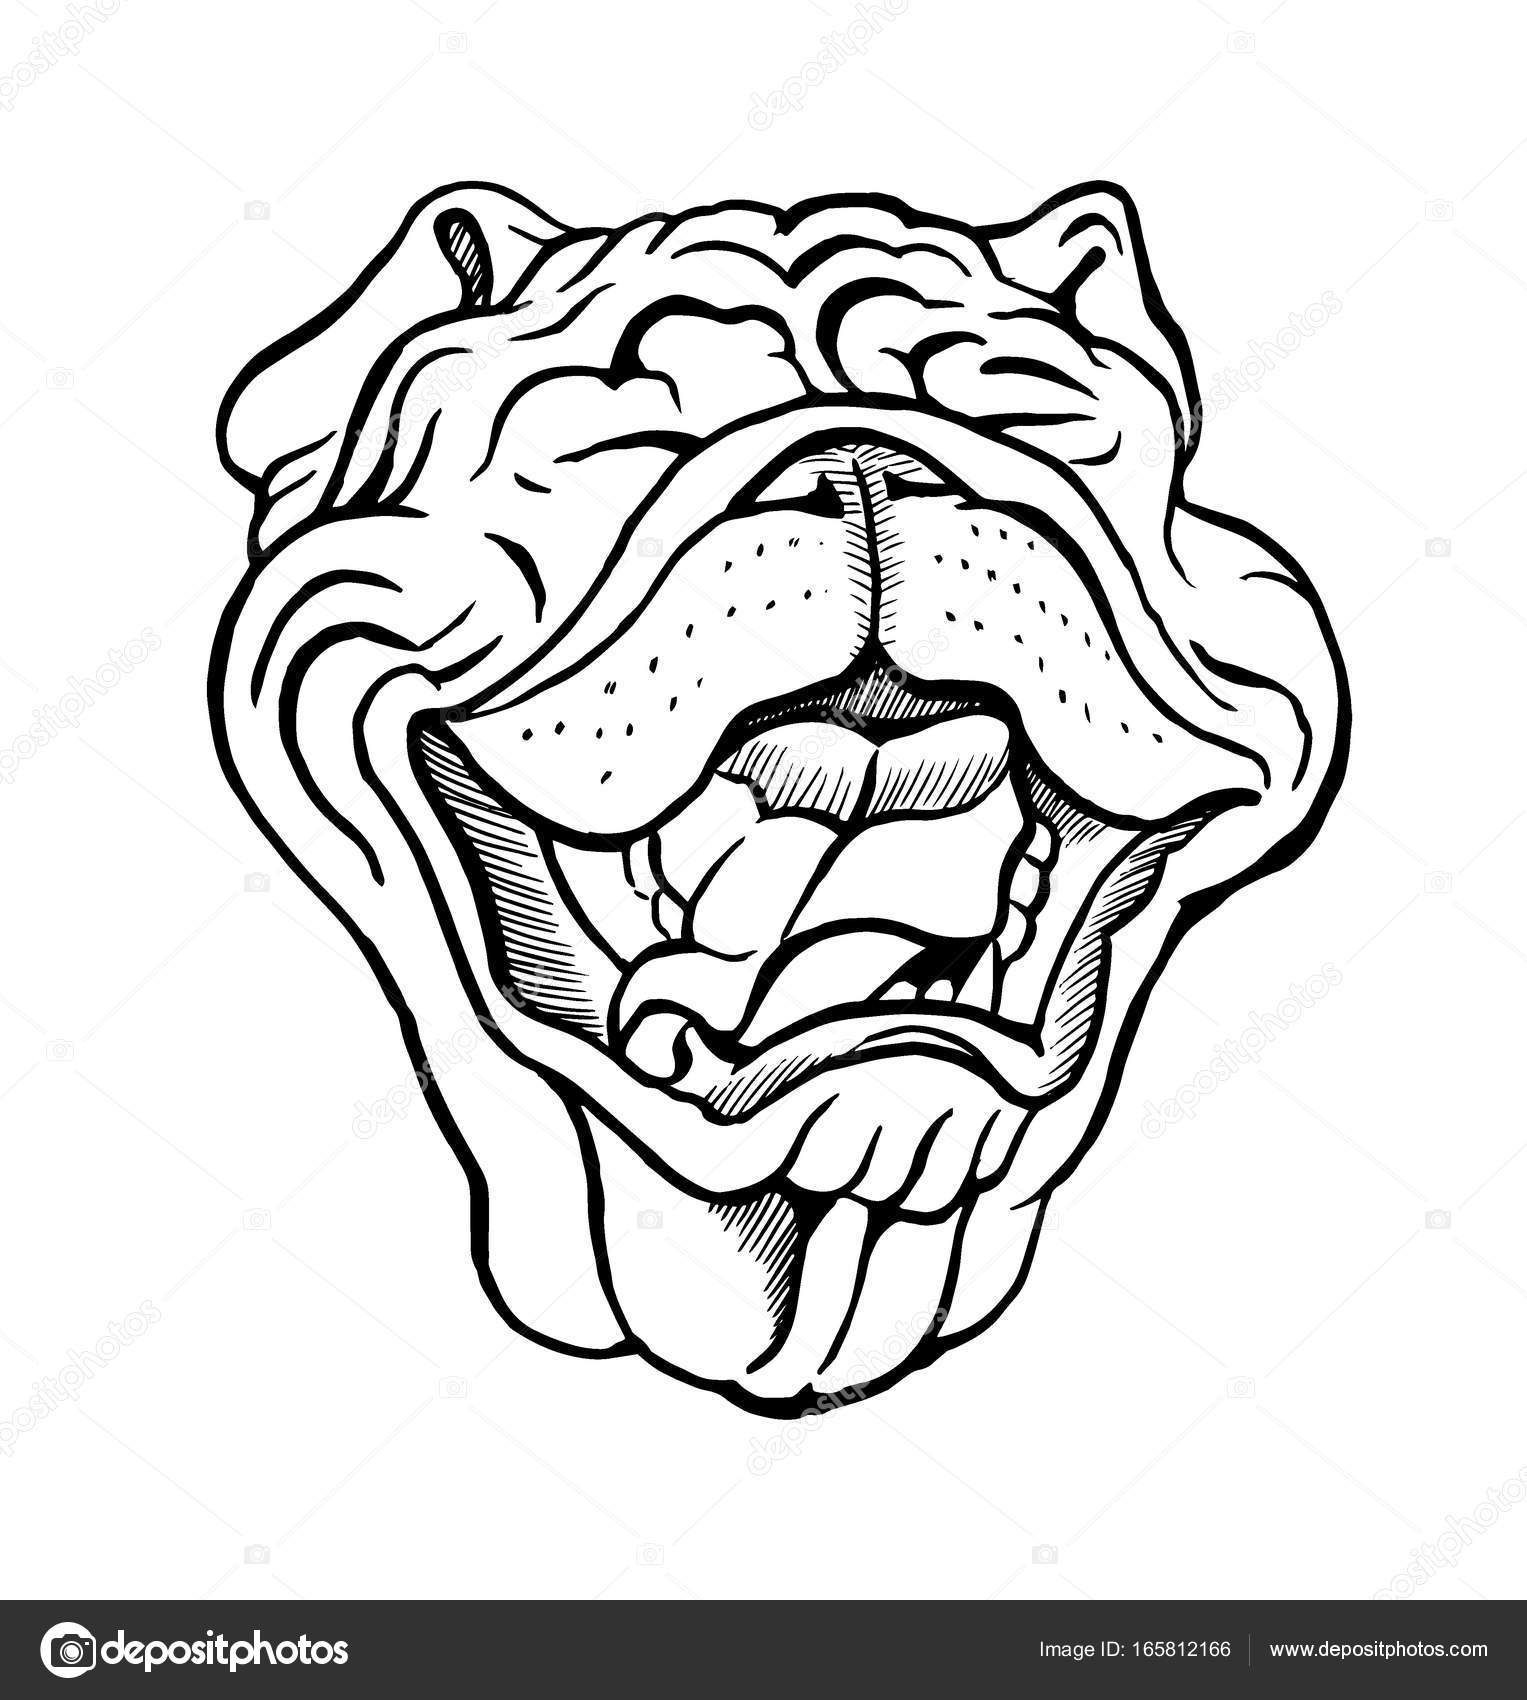 Bulldog Face Drawing at GetDrawings.com | Free for personal use ...